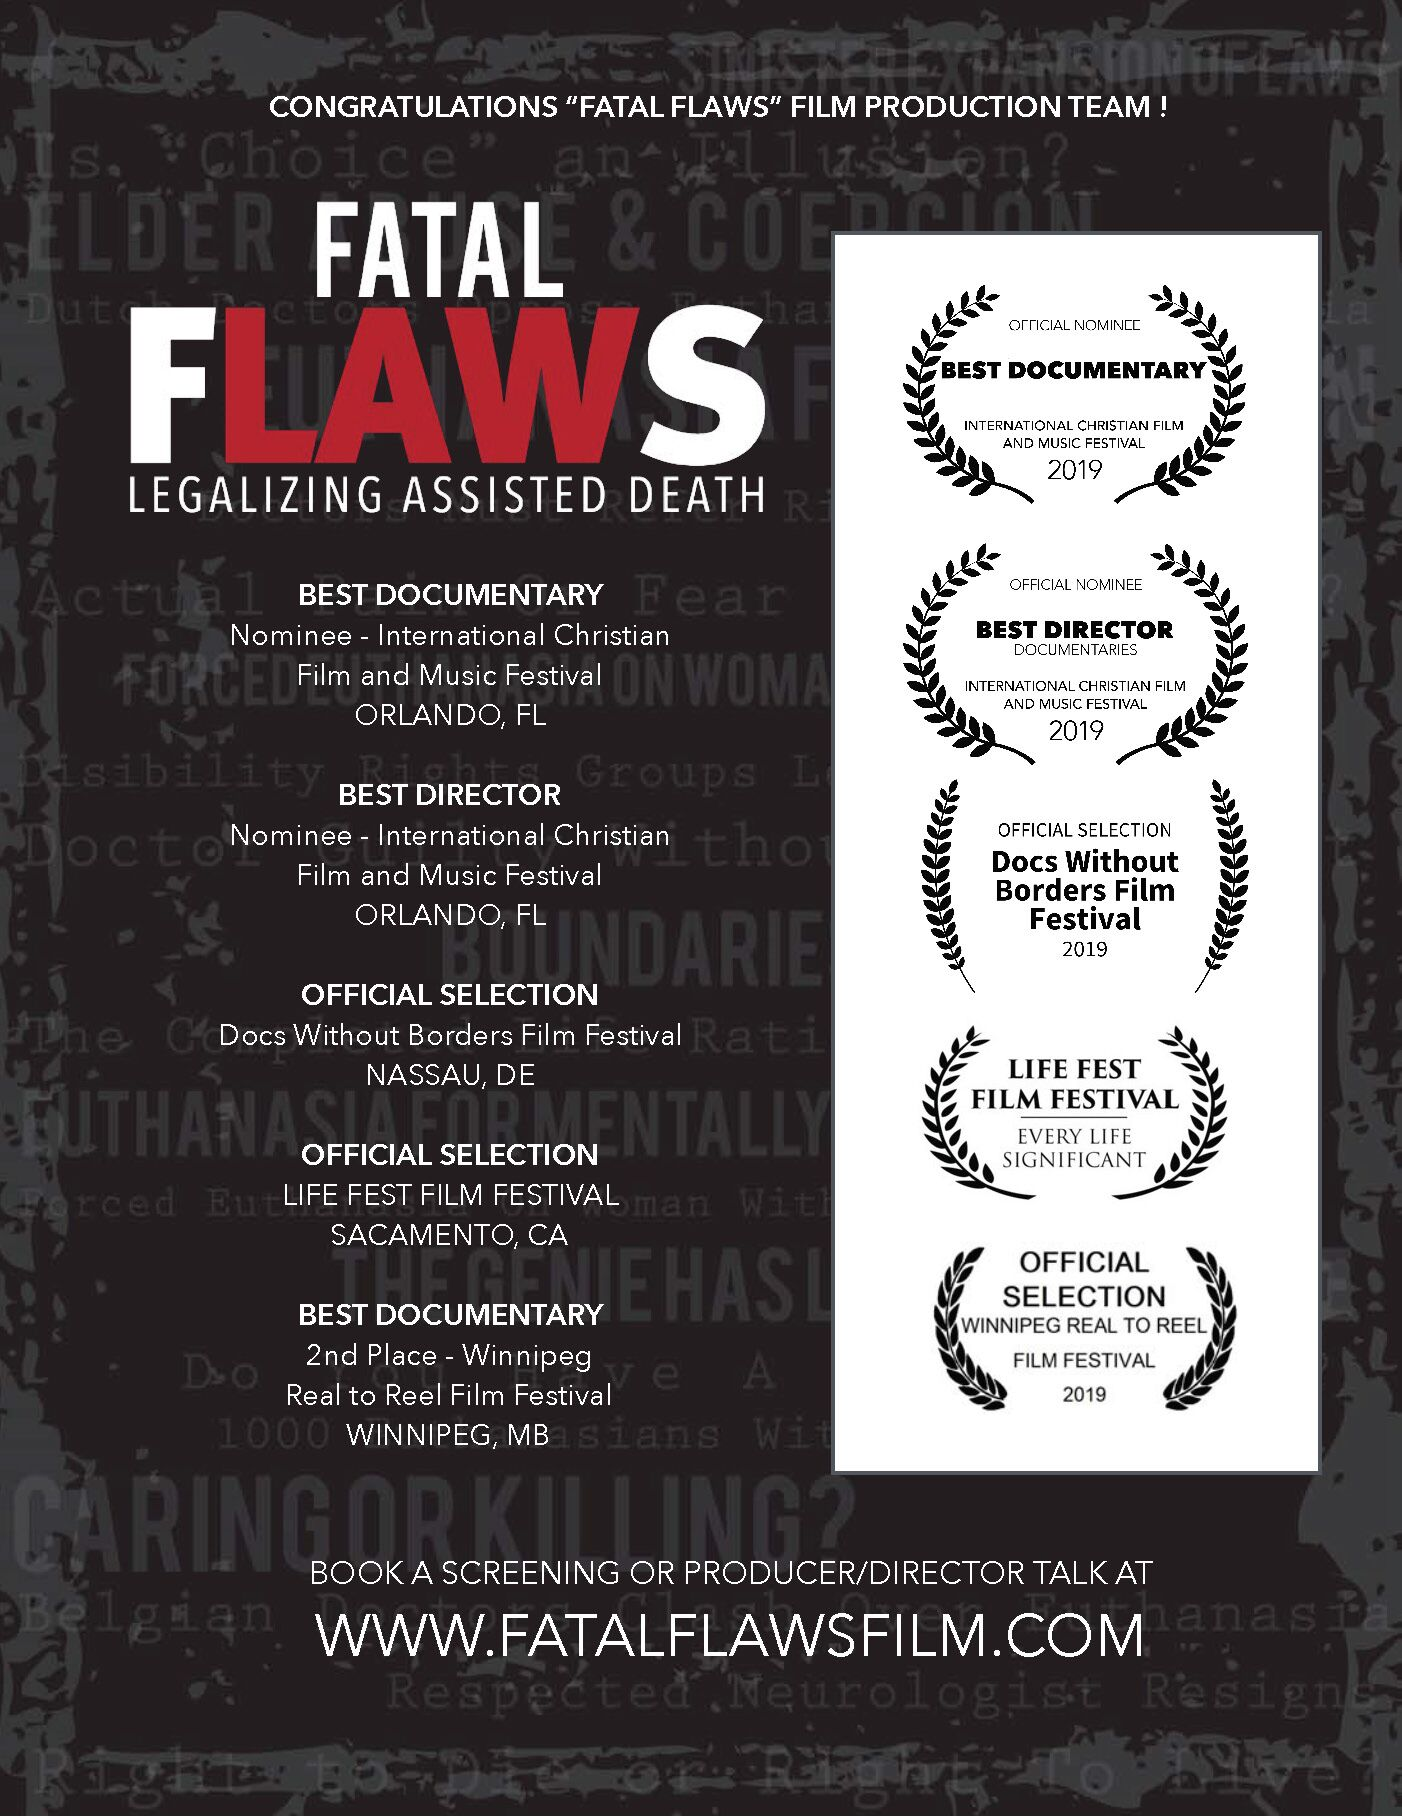 EWTN Presents 'Fatal Flaws: Legalizing Assisted Death'